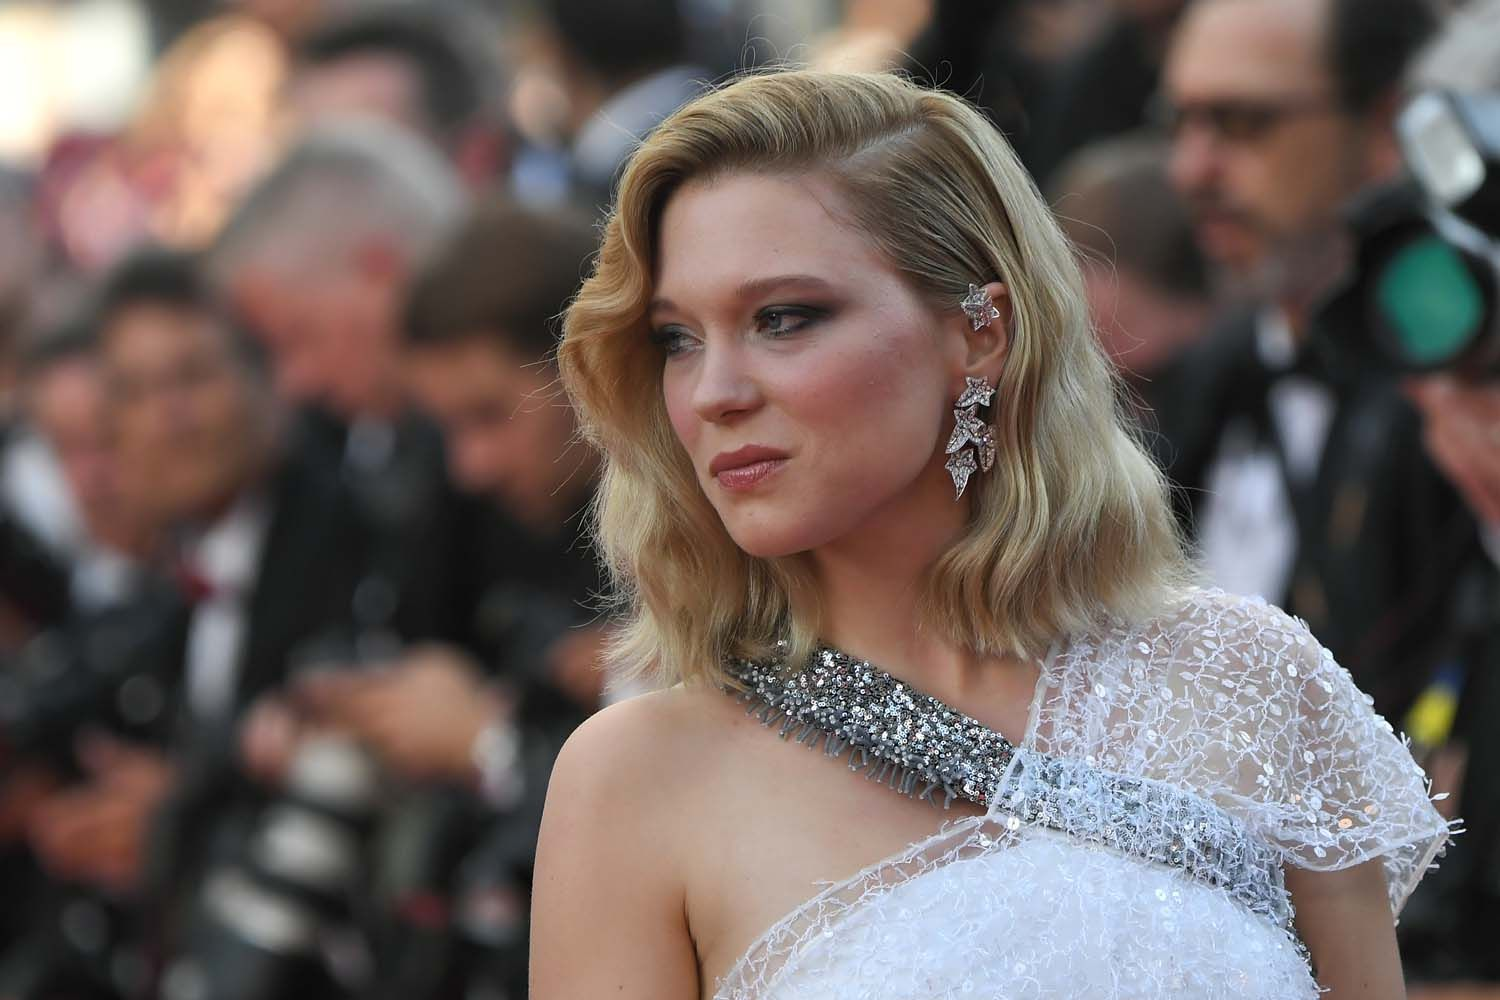 Beautifully coordinated with Léa Seydoux's dress, Boucheron's 'Lierre de Paris' asymmetric diamond and white gold pendant earrings lit up the red carpet.